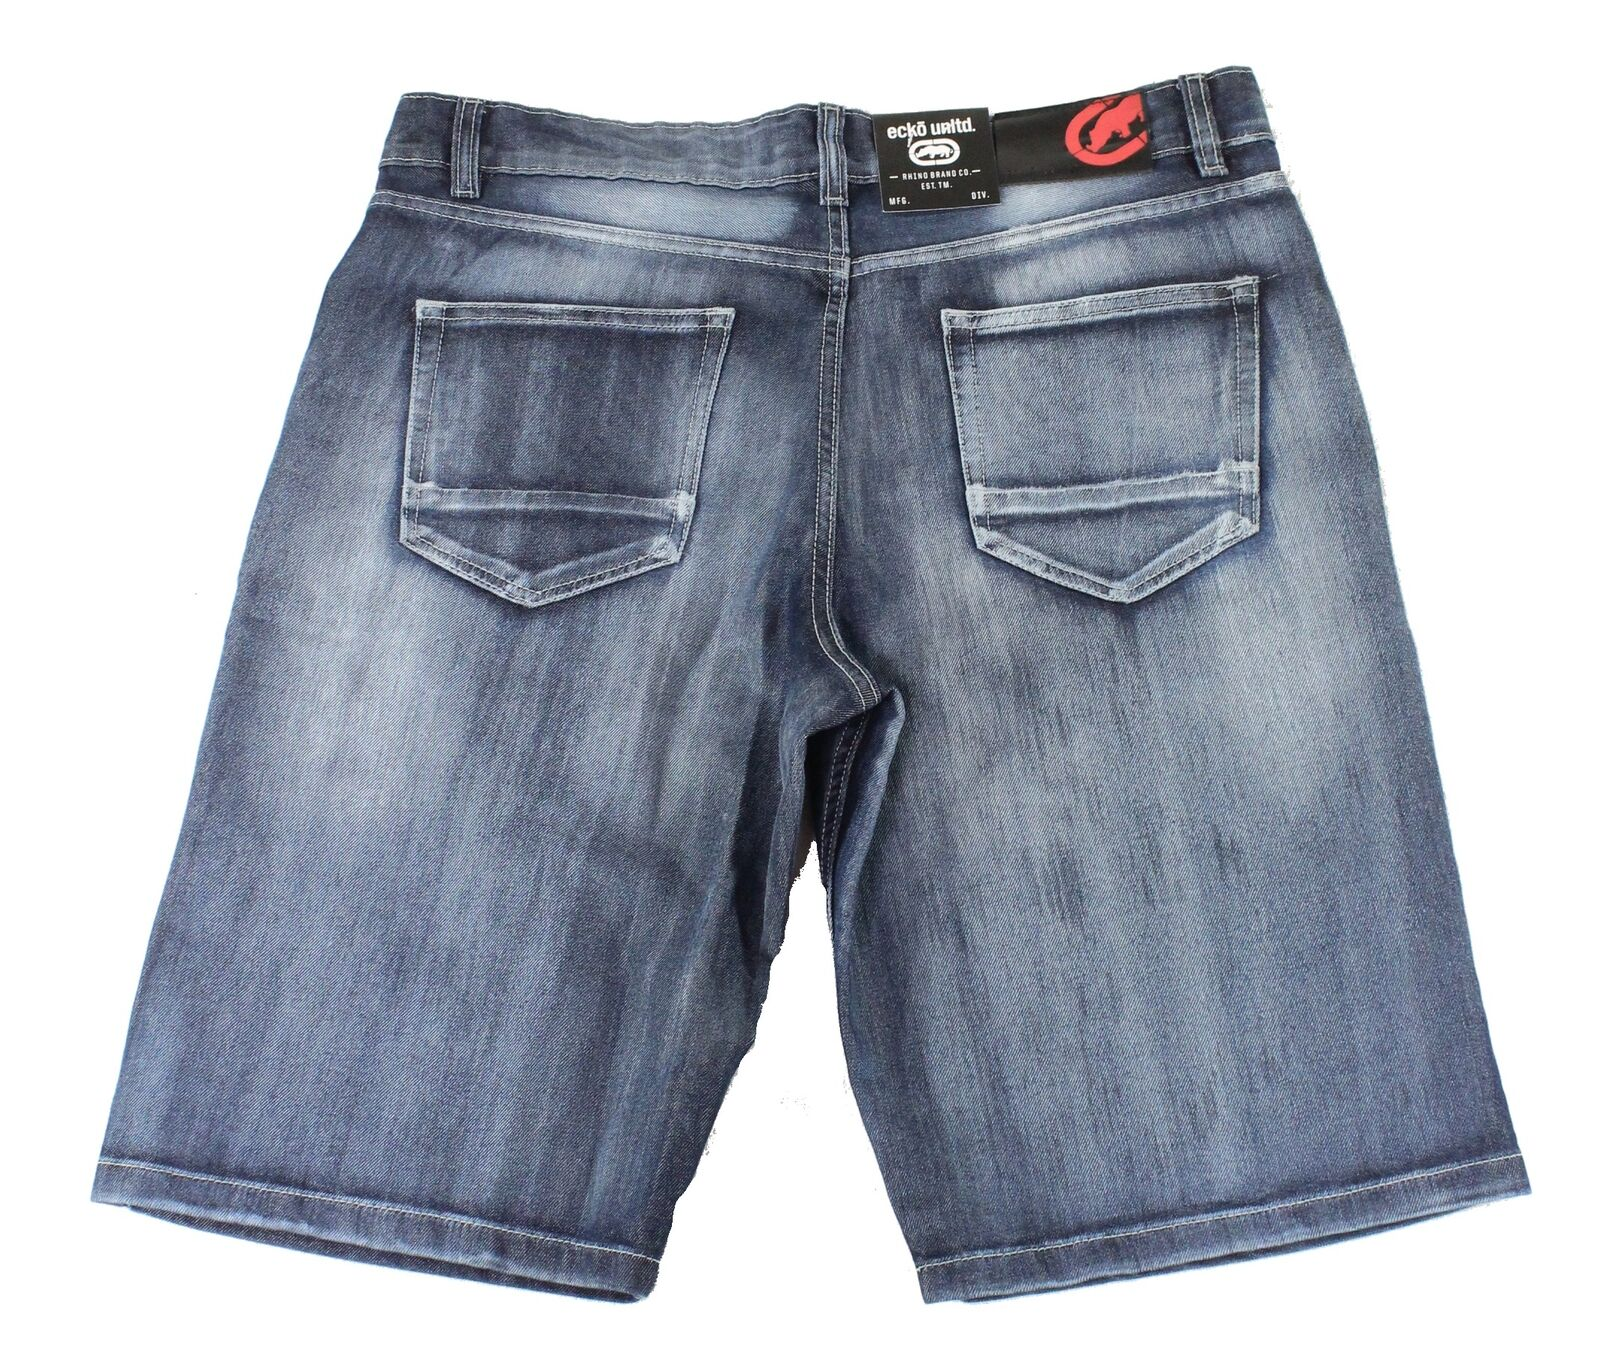 New-Ecko-Unltd-Mens-Shorts-Blue-Size-36-Denim-759-Relaxed-Fit-Washed-48-194 thumbnail 2